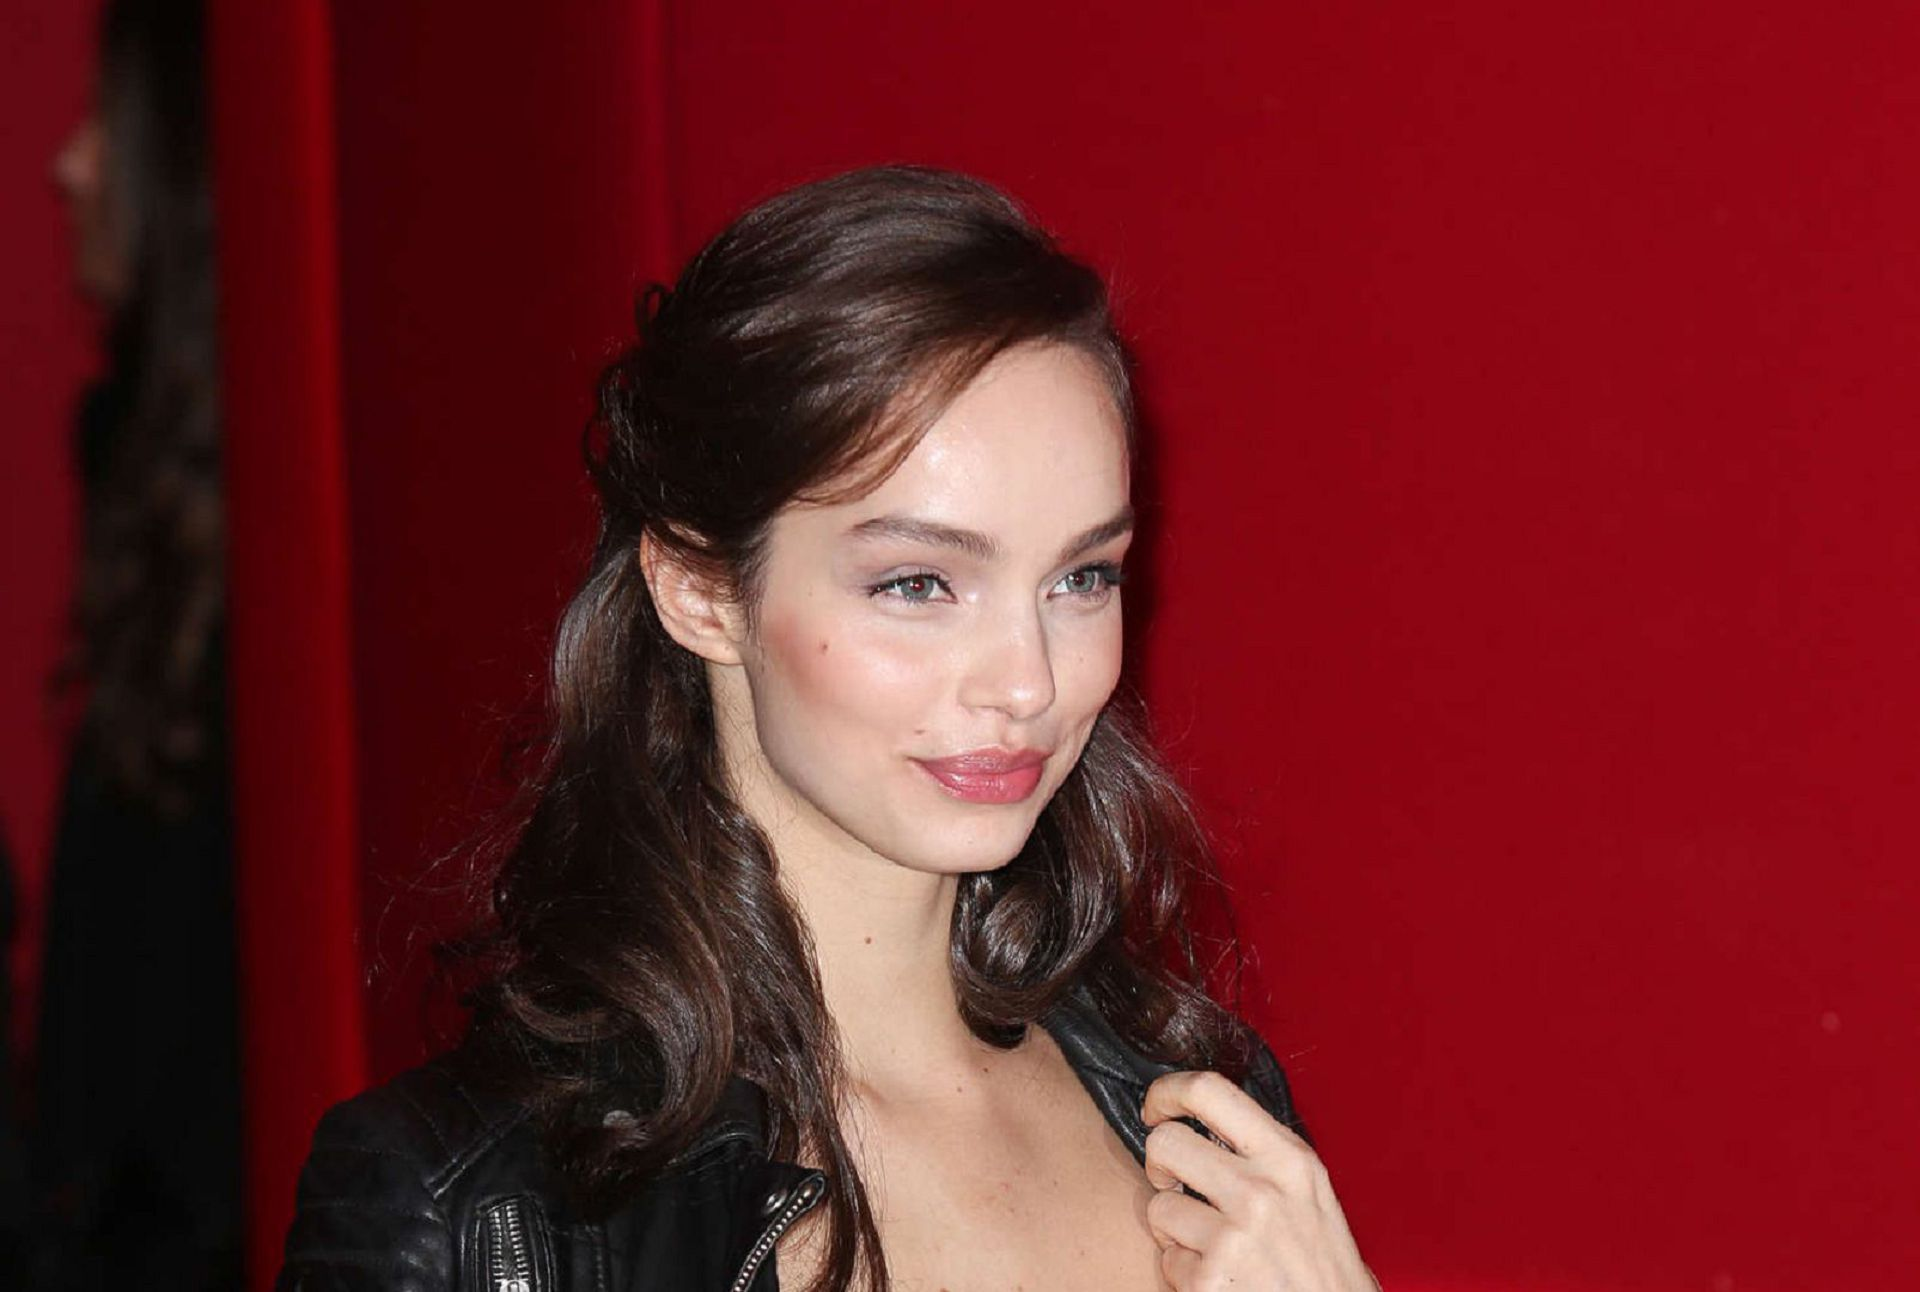 luma grothe model hd wallpaper 59922